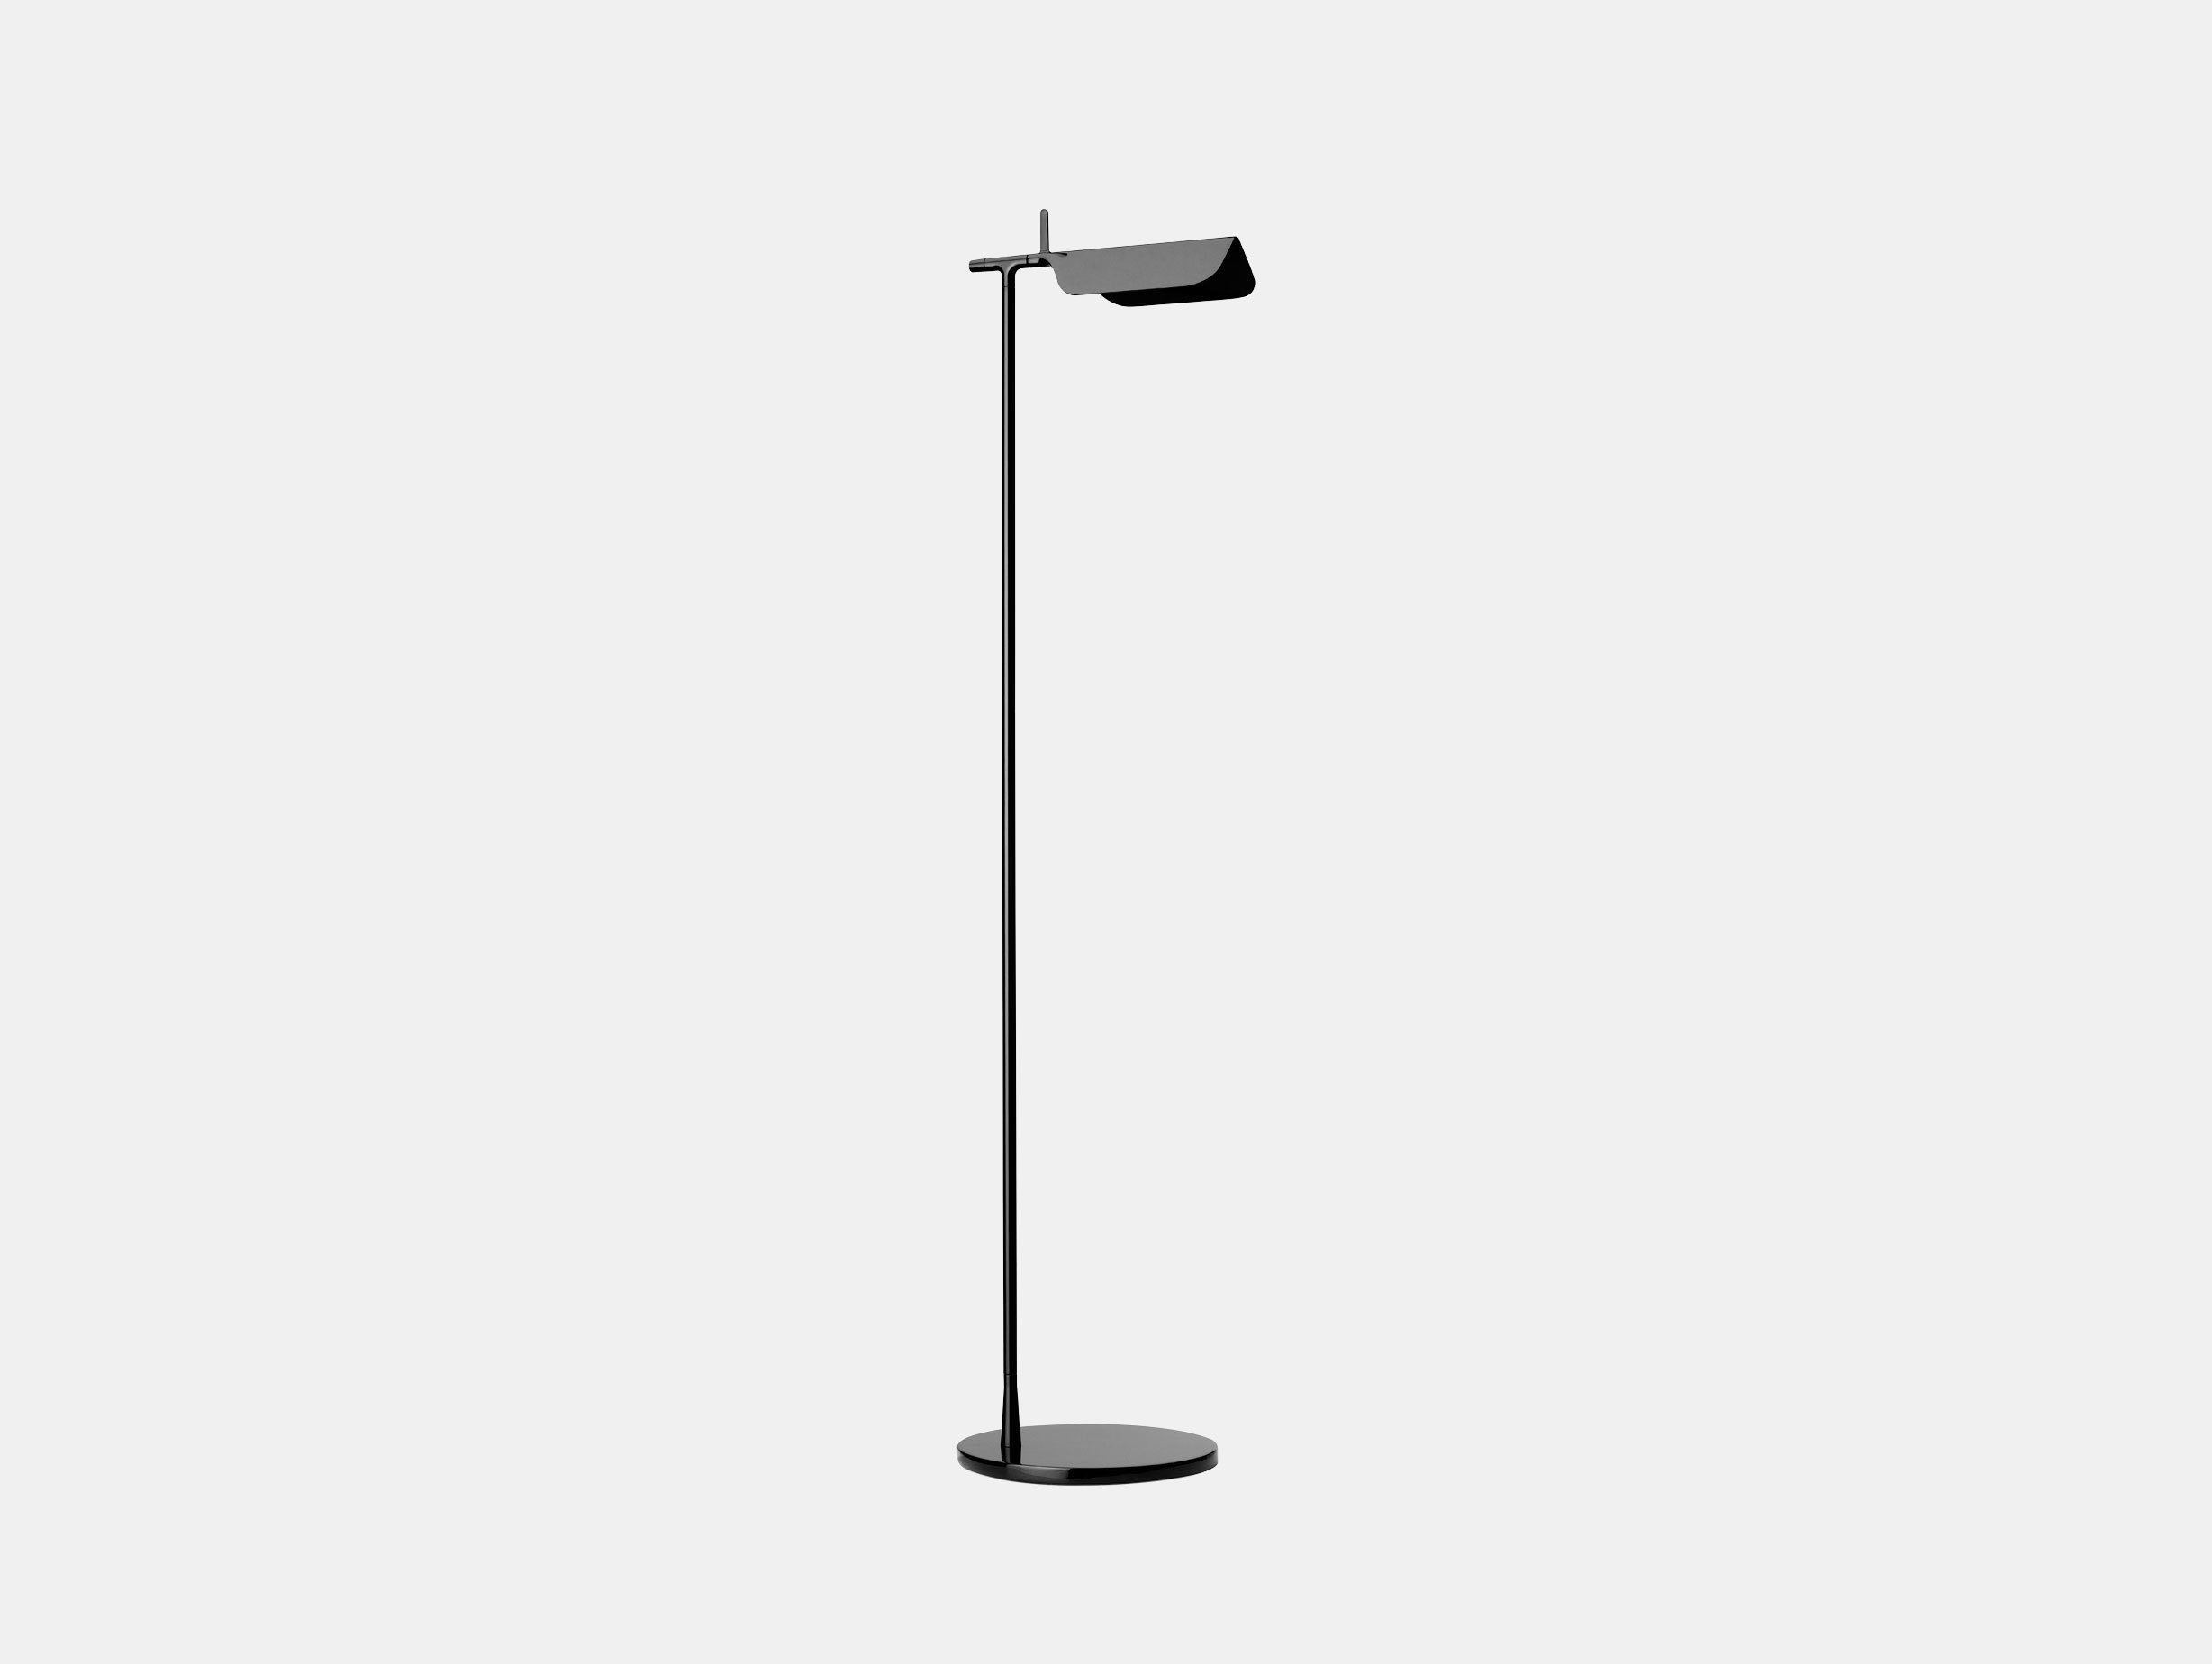 Tab F LED Floor Lamp image 1